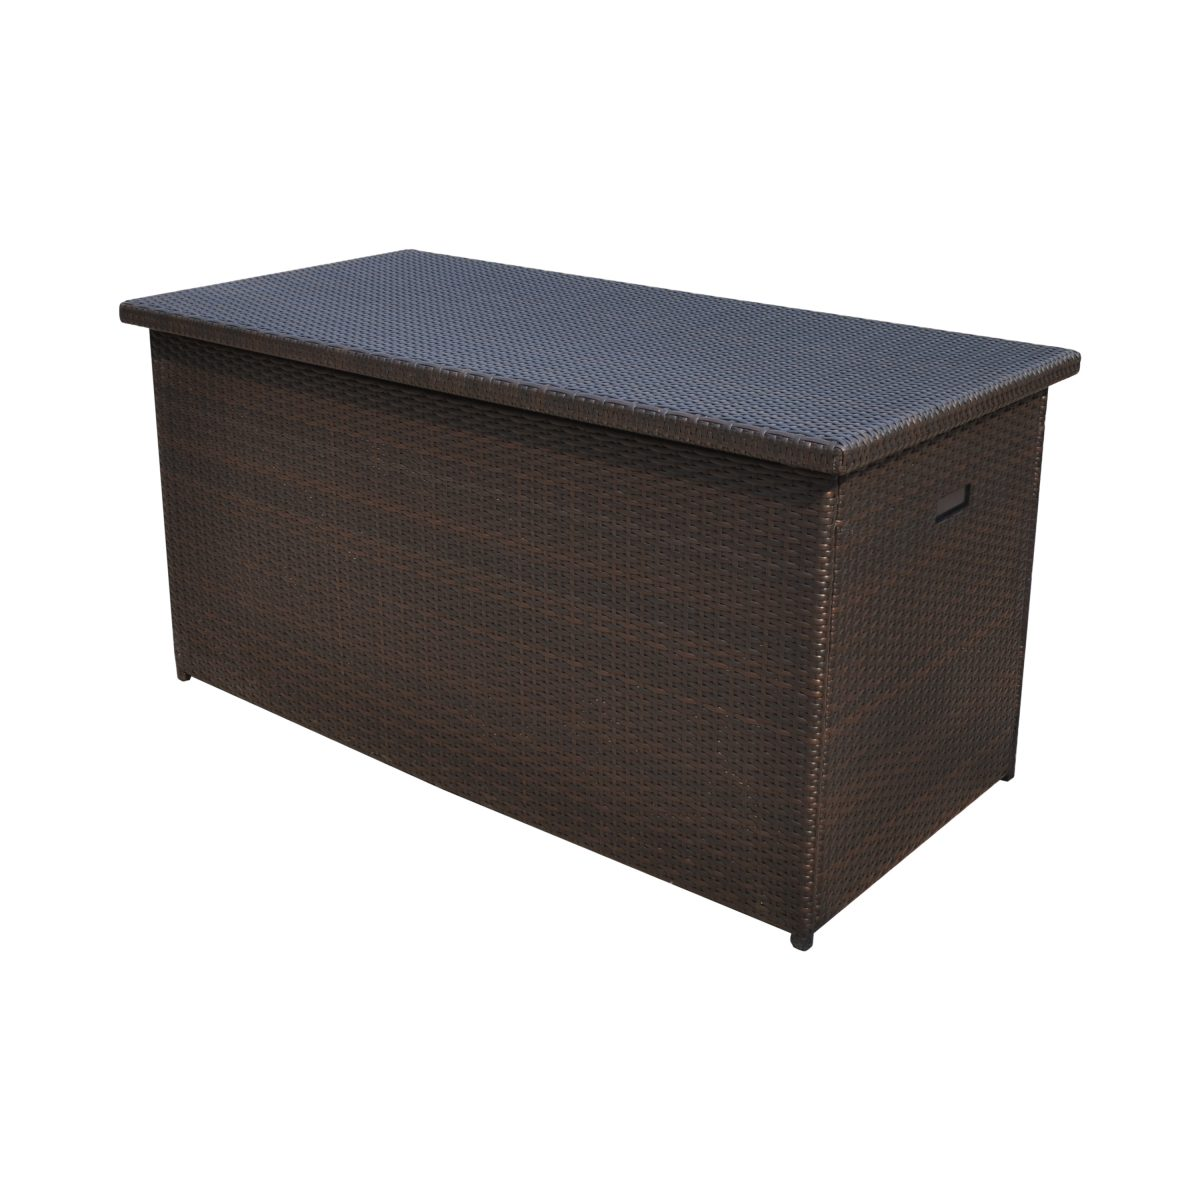 Sirio Brown Color Patio Storage Box